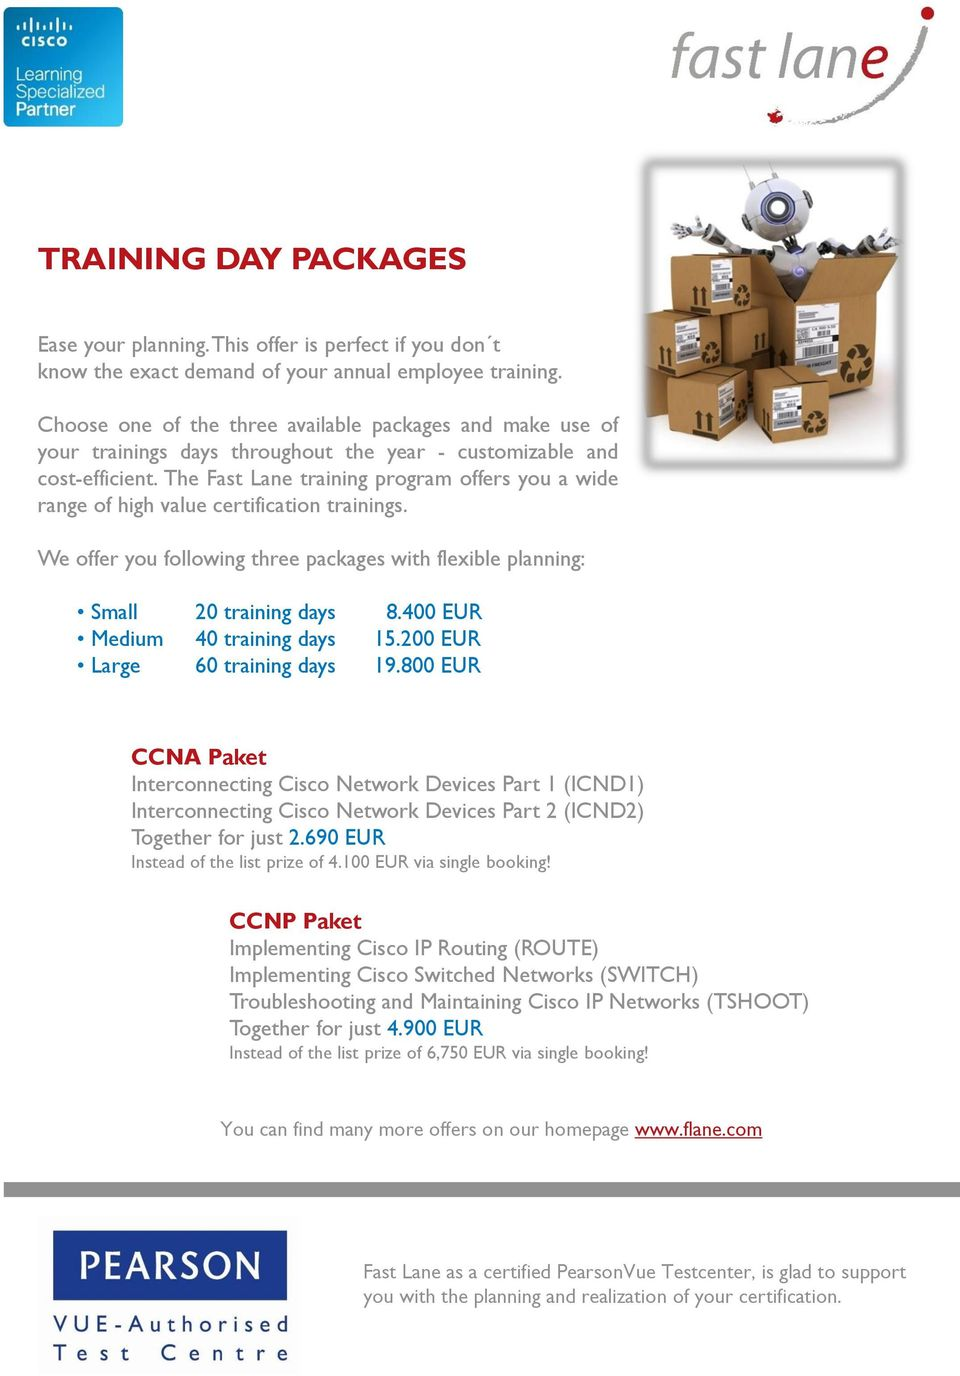 FAST LANE > TRAINING FROM THE EXPERTS Fast Lane Institute